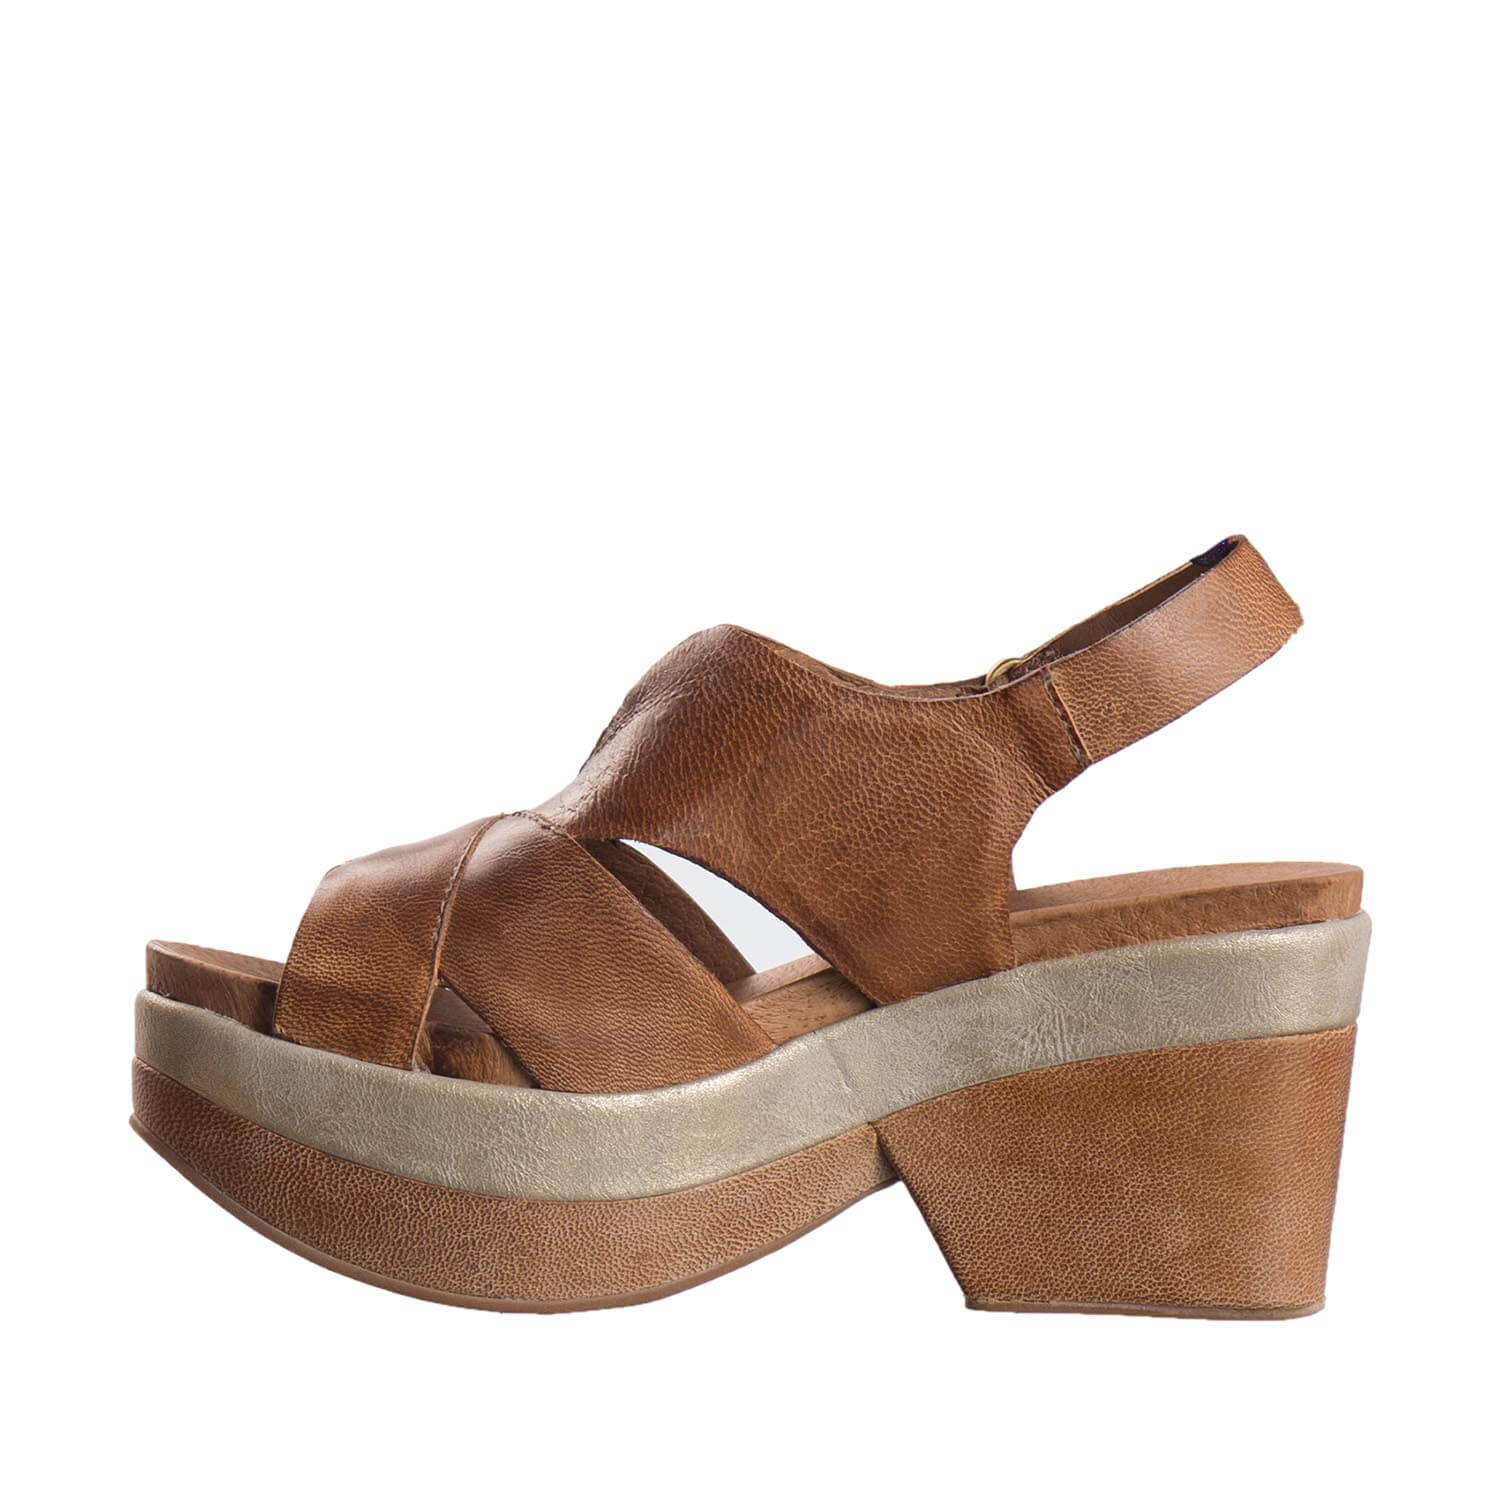 Antelope Women's 708 Leather Banded Cross B079S4PTVG 7 B(M) US / 38 EU|Taupe